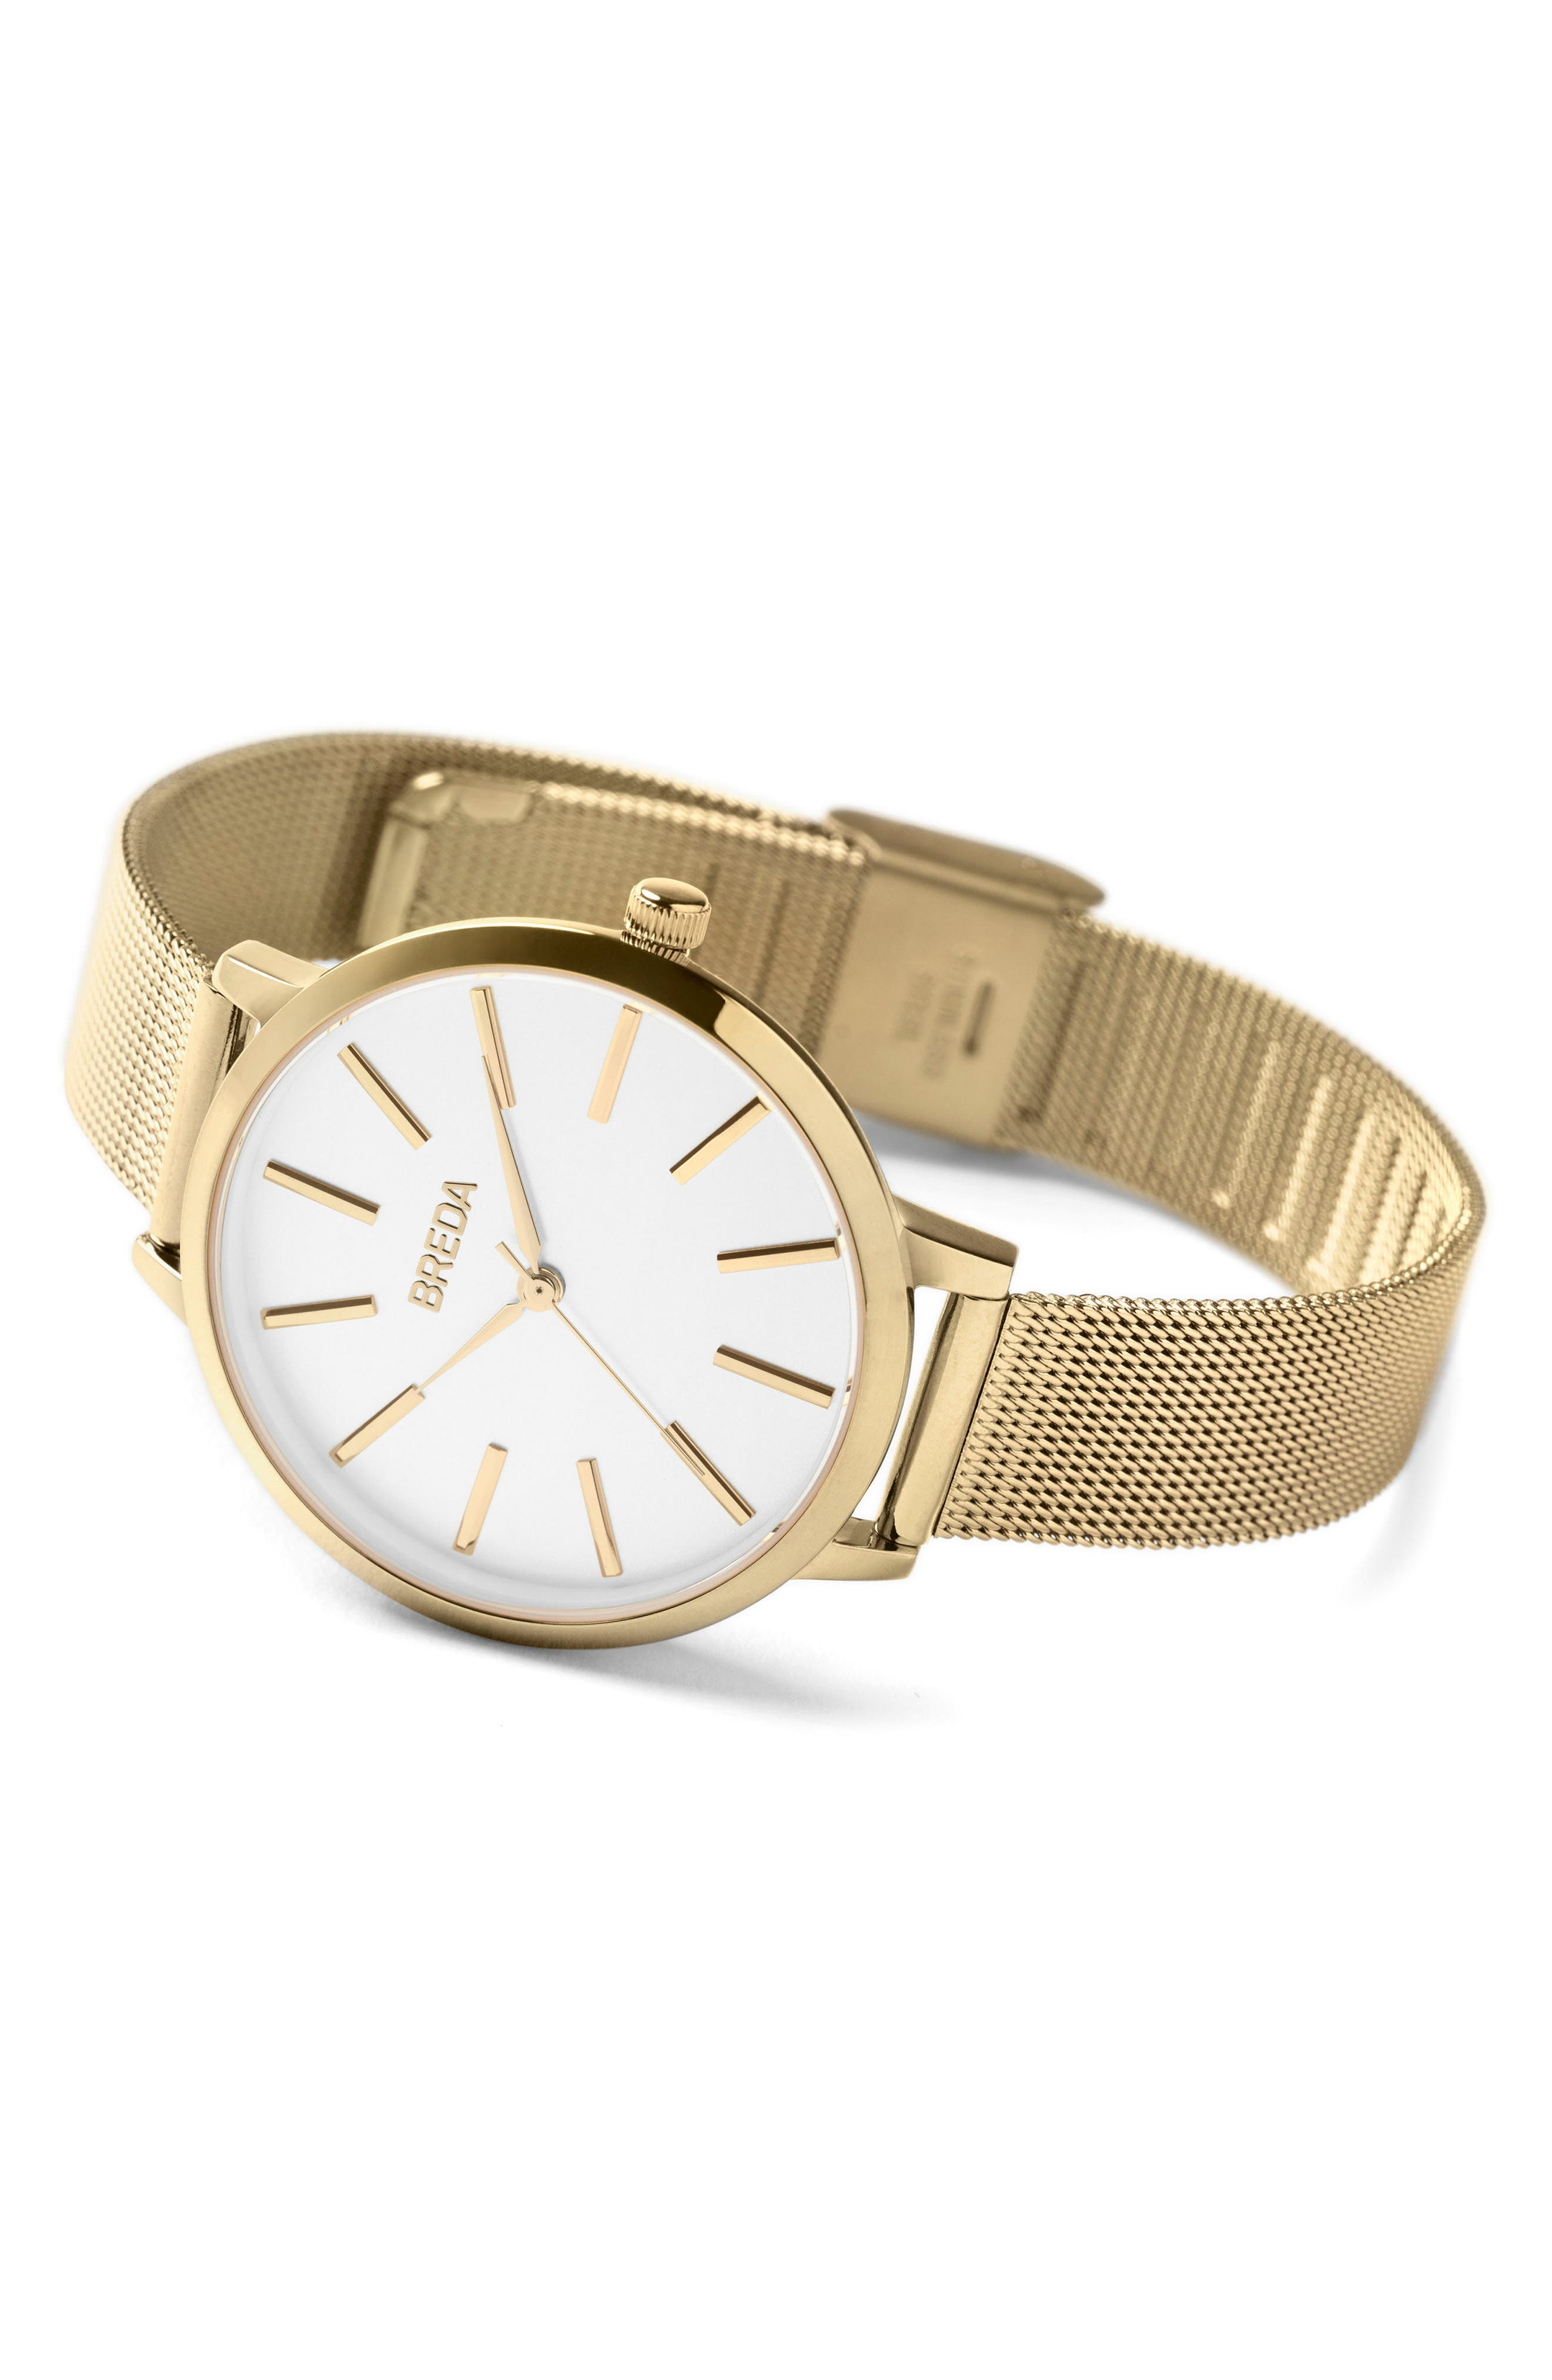 Joule Mesh Strap Watch, 37mm,                             Alternate thumbnail 3, color,                             GOLD